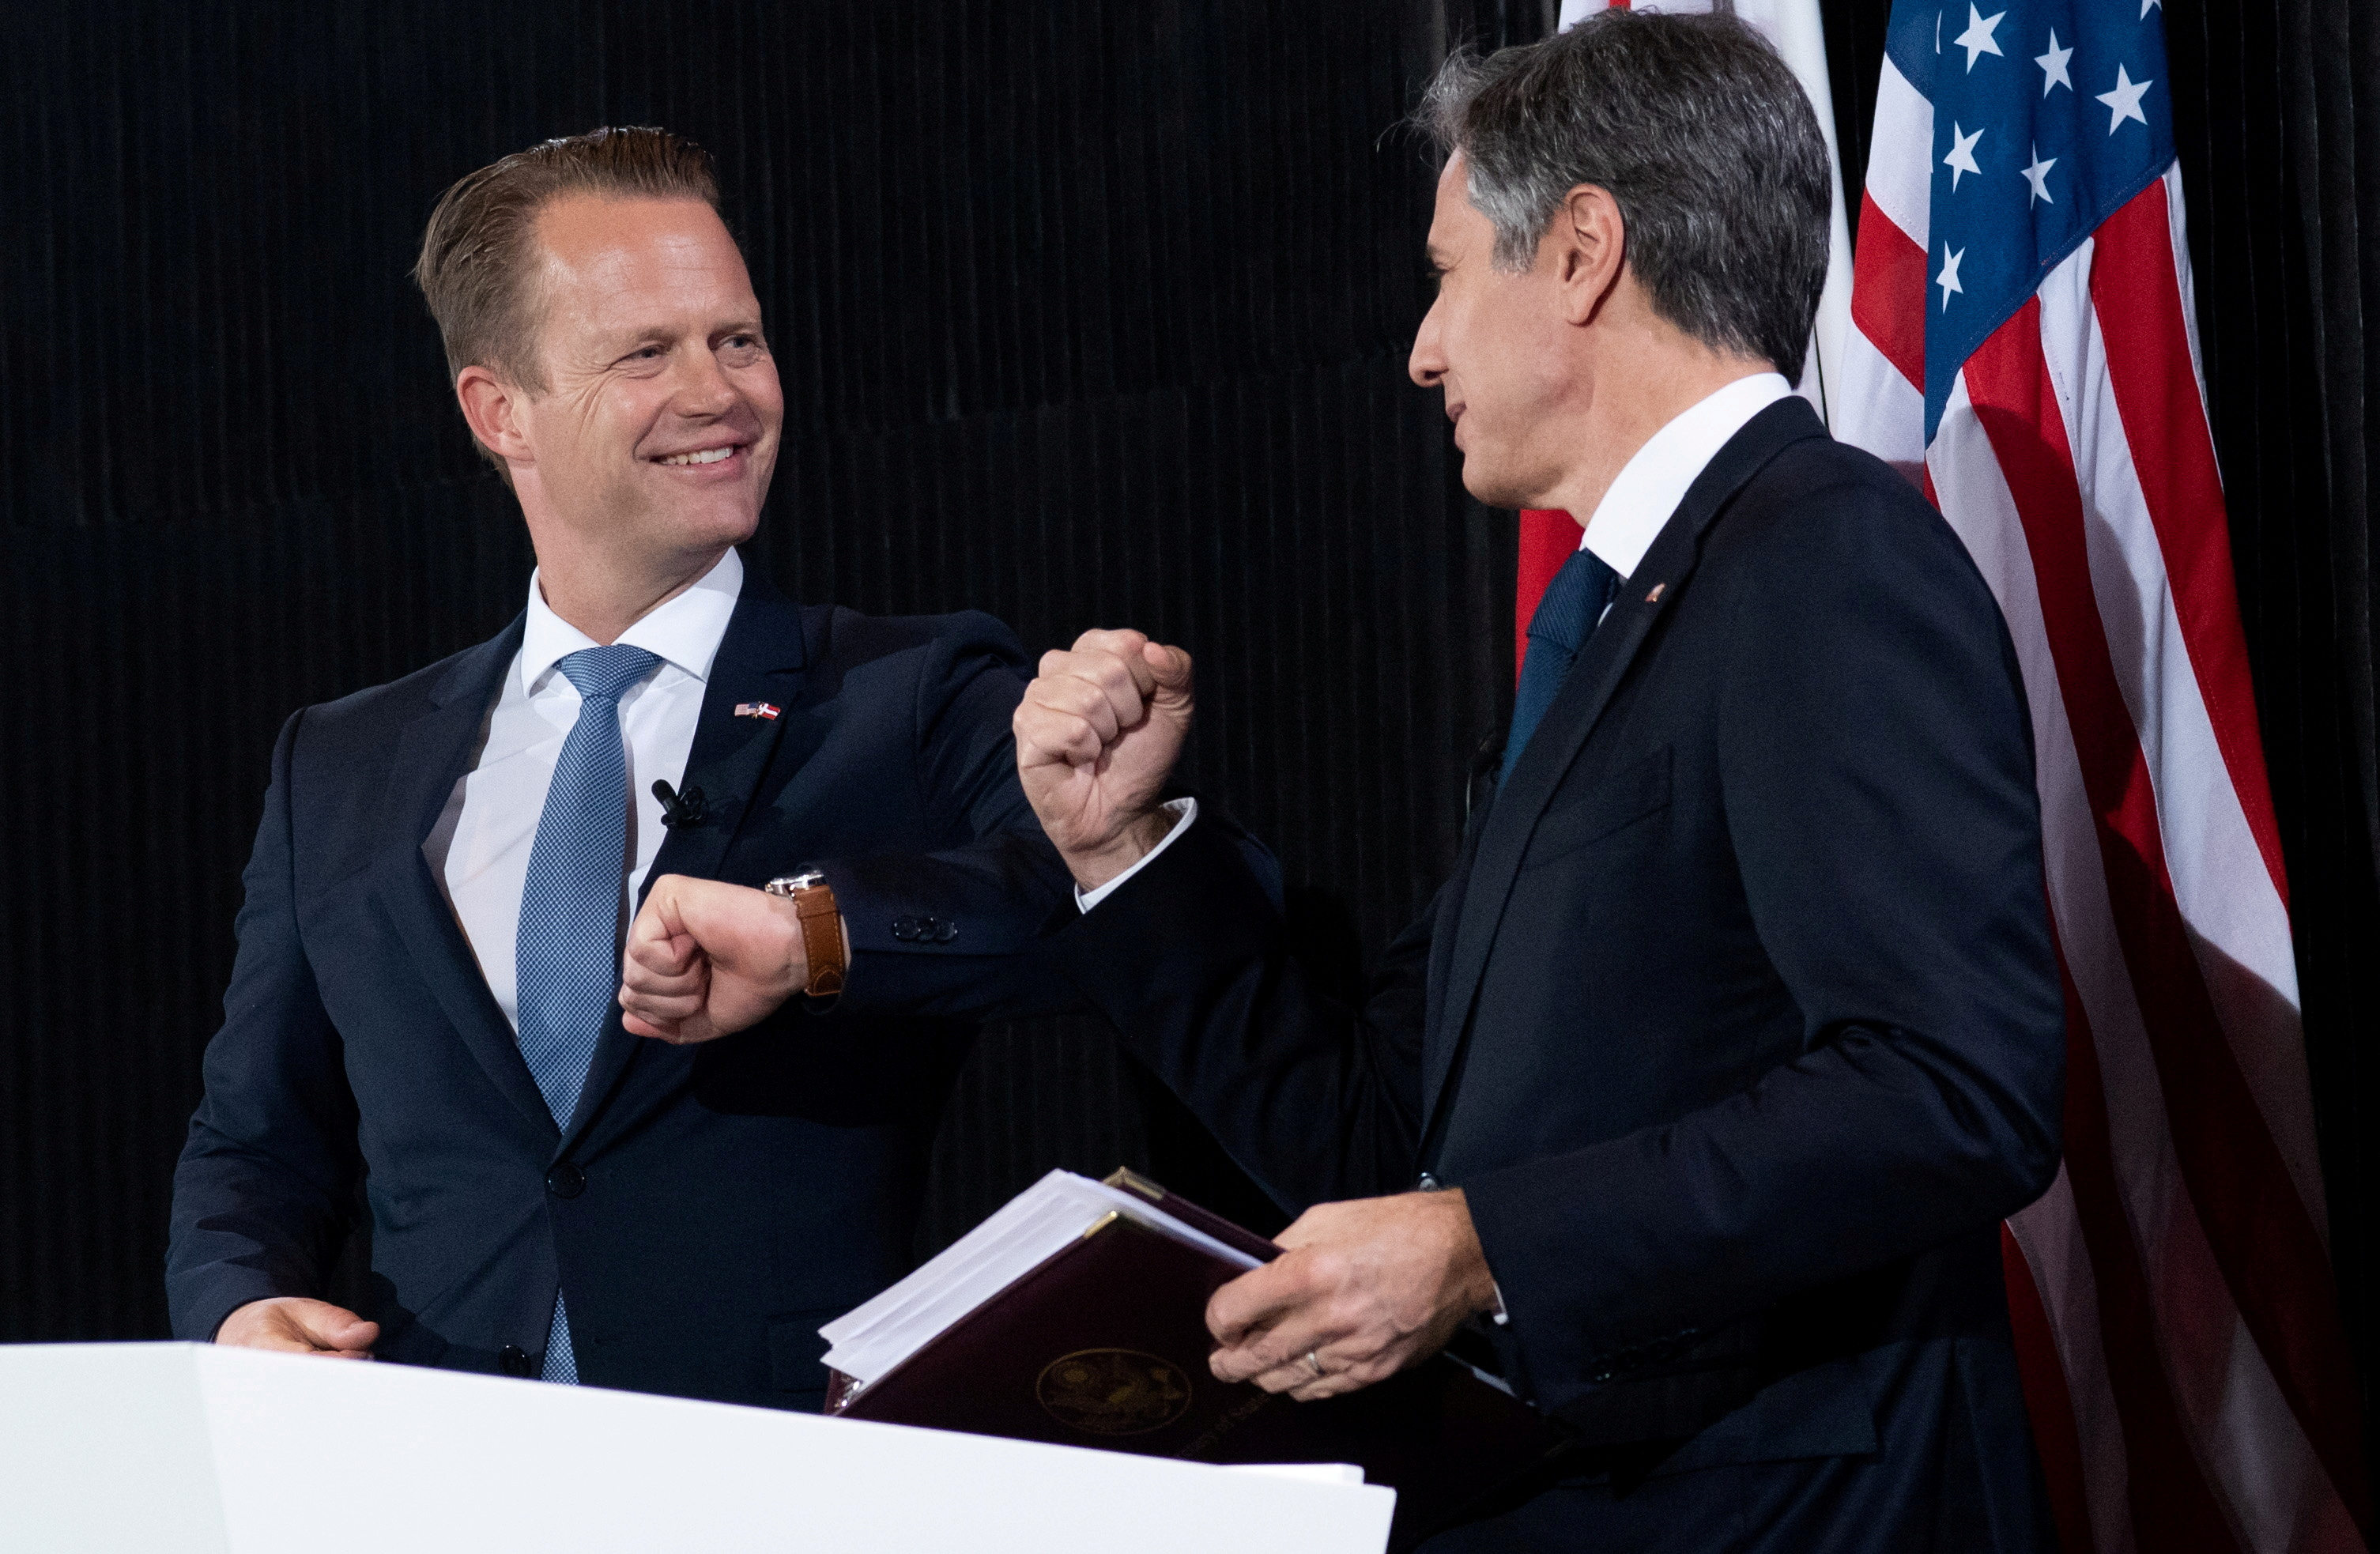 U.S. Secretary of State Antony Blinken and Danish Foreign Minister Jeppe Kofod elbow bump at the end of a joint news conference following meetings at the Danish Foreign Ministry in Copenhagen, Denmark, May 17, 2021. Saul Loeb/Pool via REUTERS/File Photo